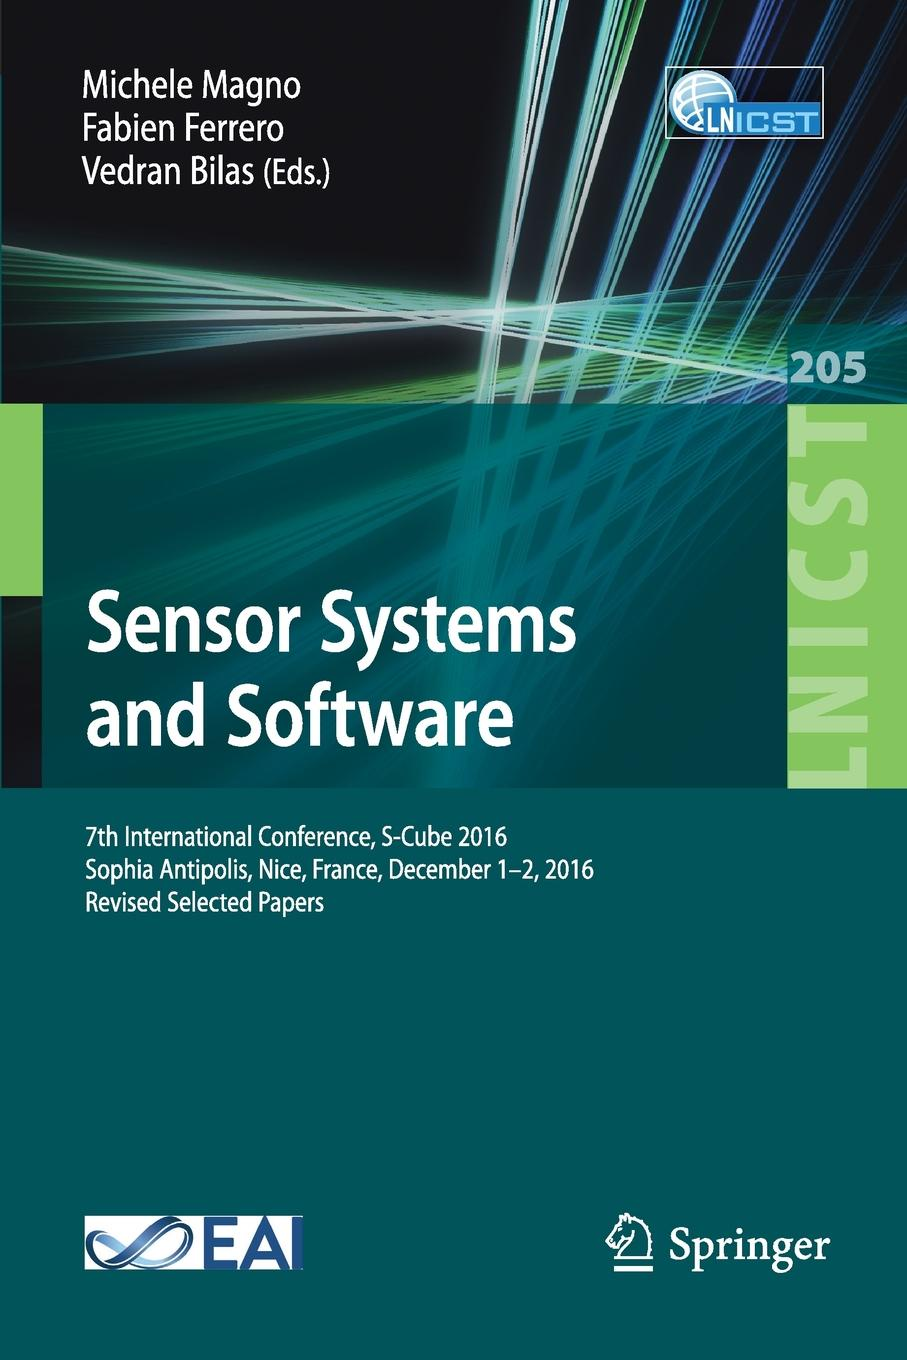 Sensor Systems and Software. 7th International Conference, S-Cube 2016, Sophia Antipolis, Nice, France, December 1-2, 2016, Revised Selected Papers sophia von sawilski horton s ripples